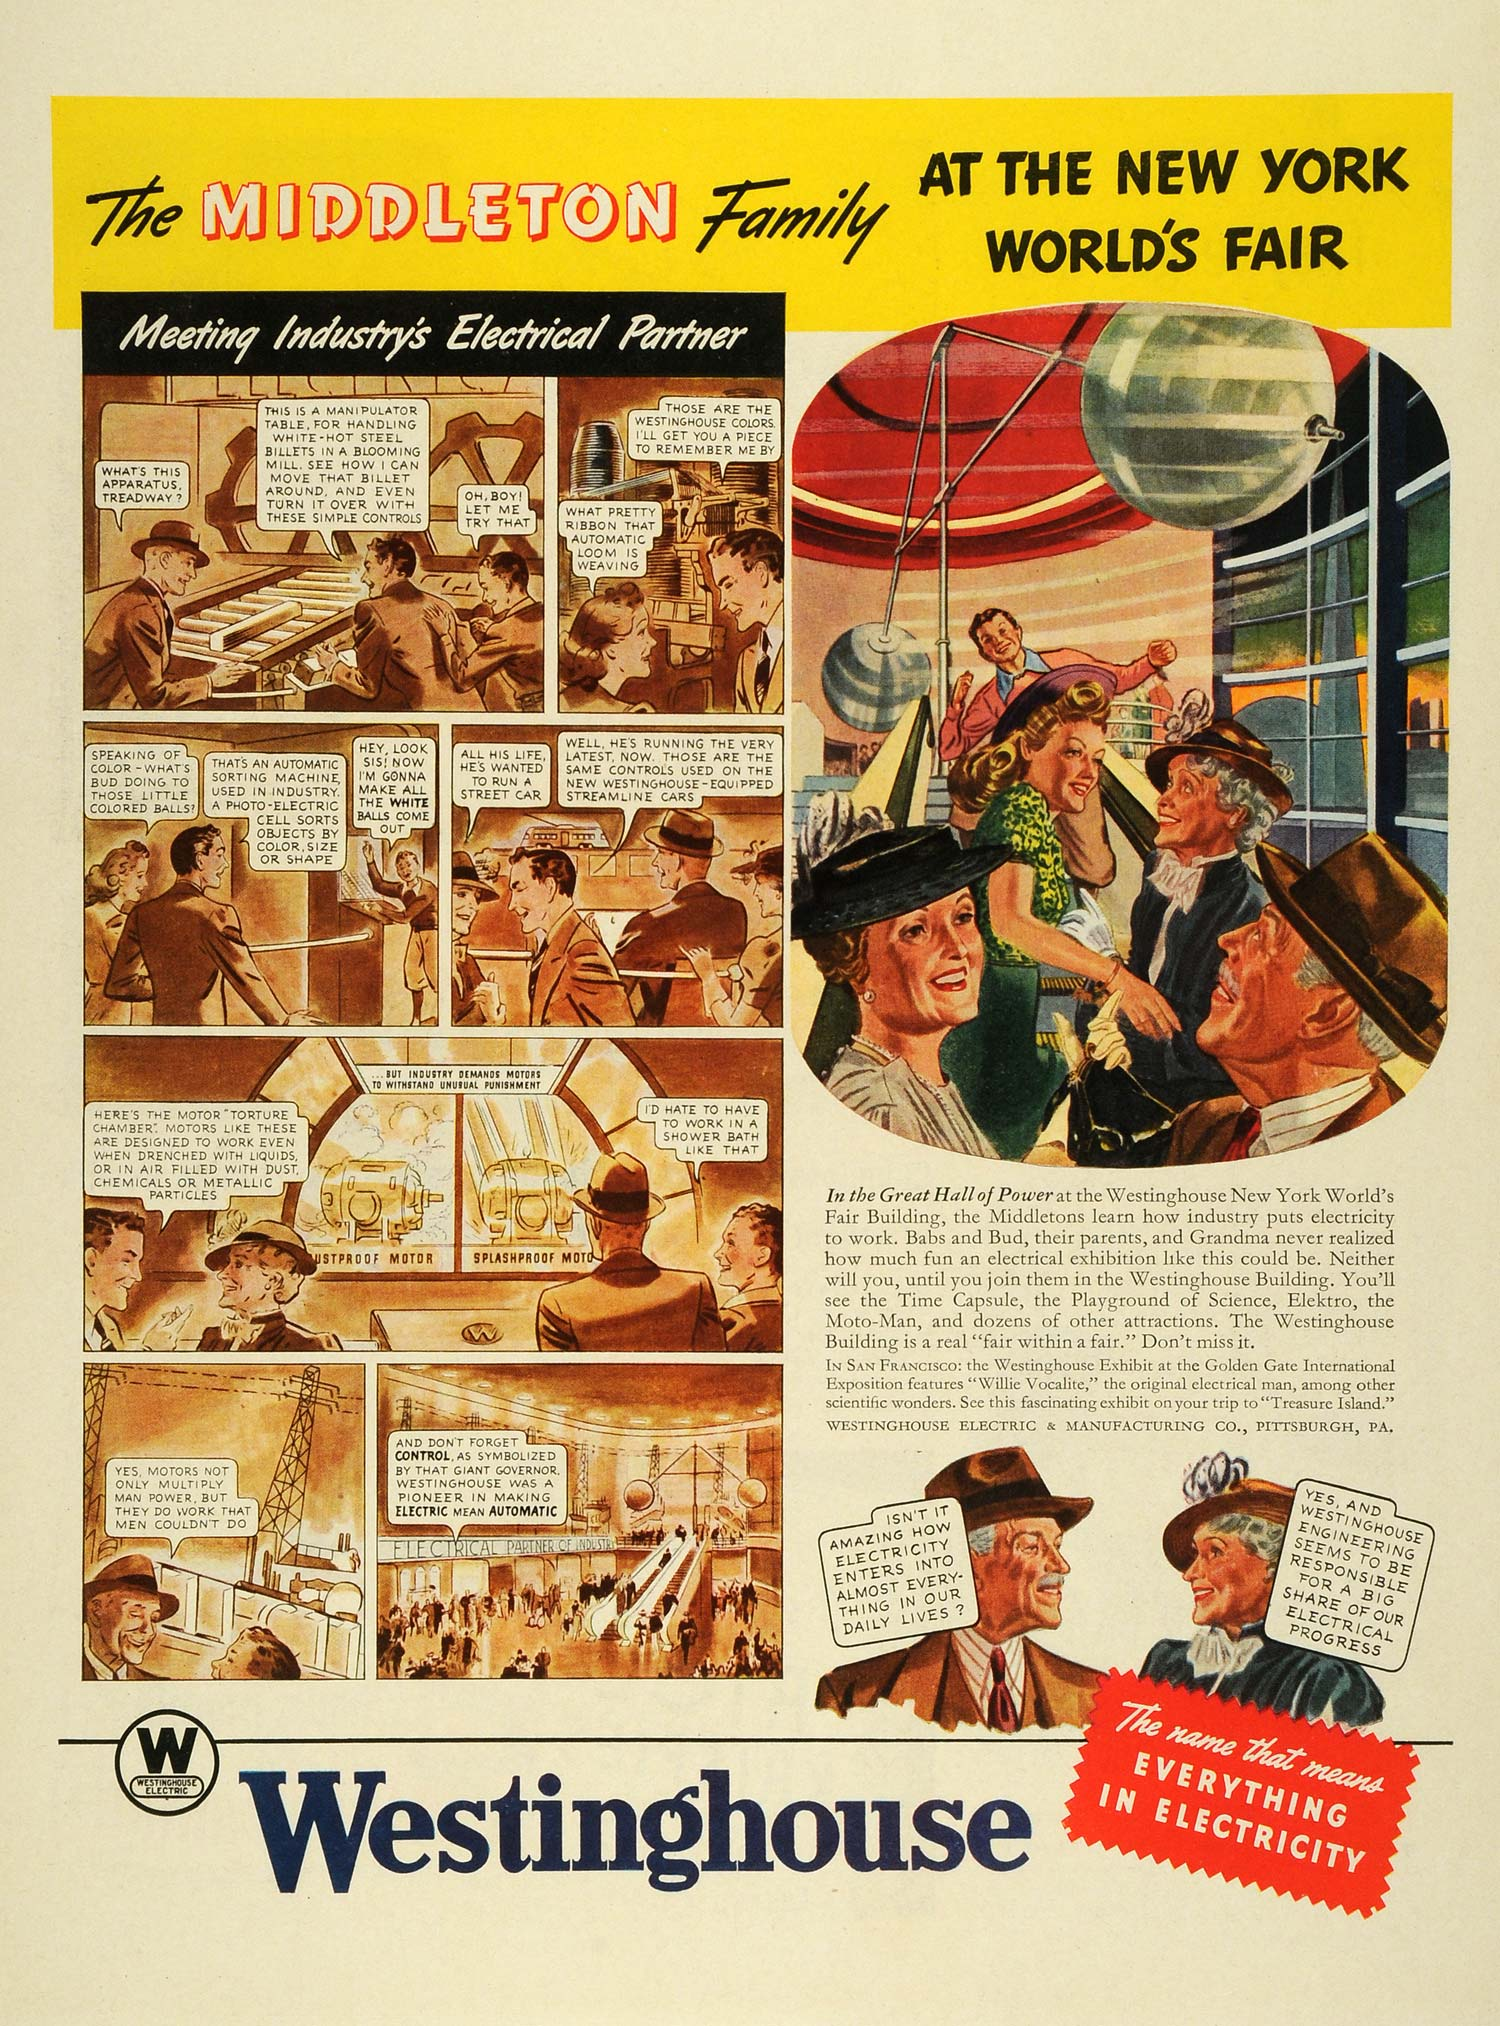 1939 Ad New York World Fair Middleton Family Westinghouse Electricity LF5